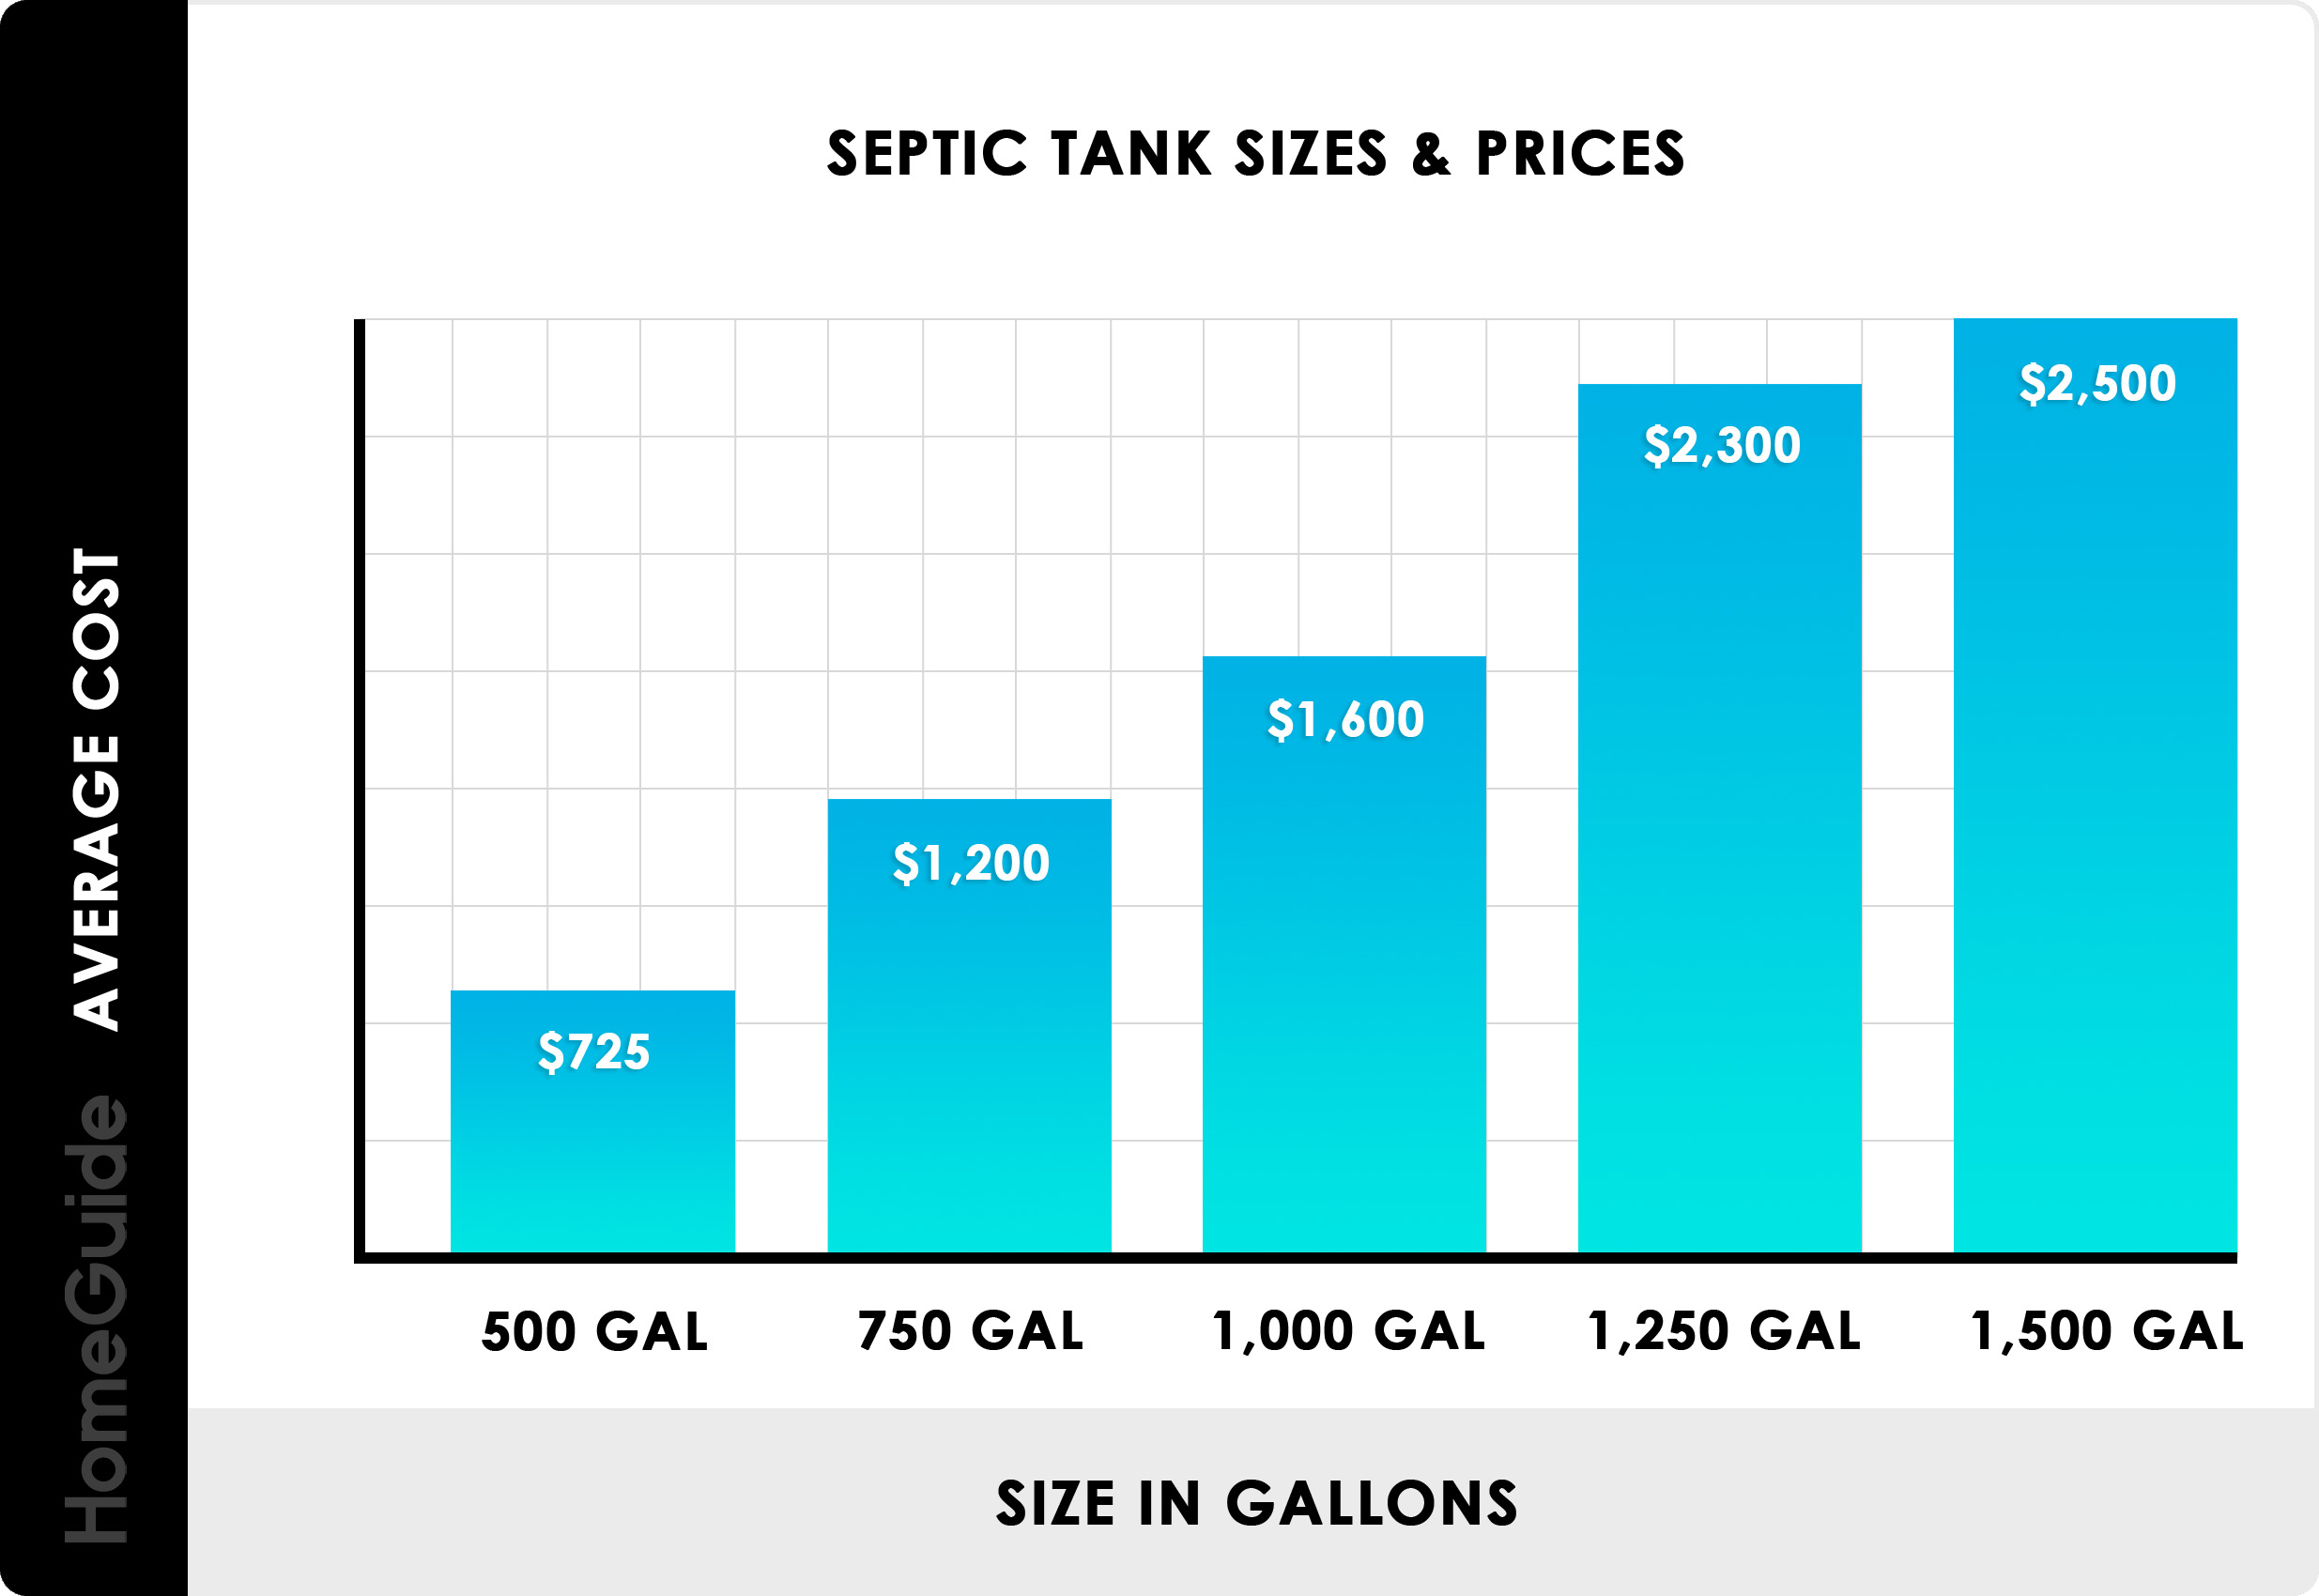 2019 Septic Tank System Installation Costs & Replacement Prices